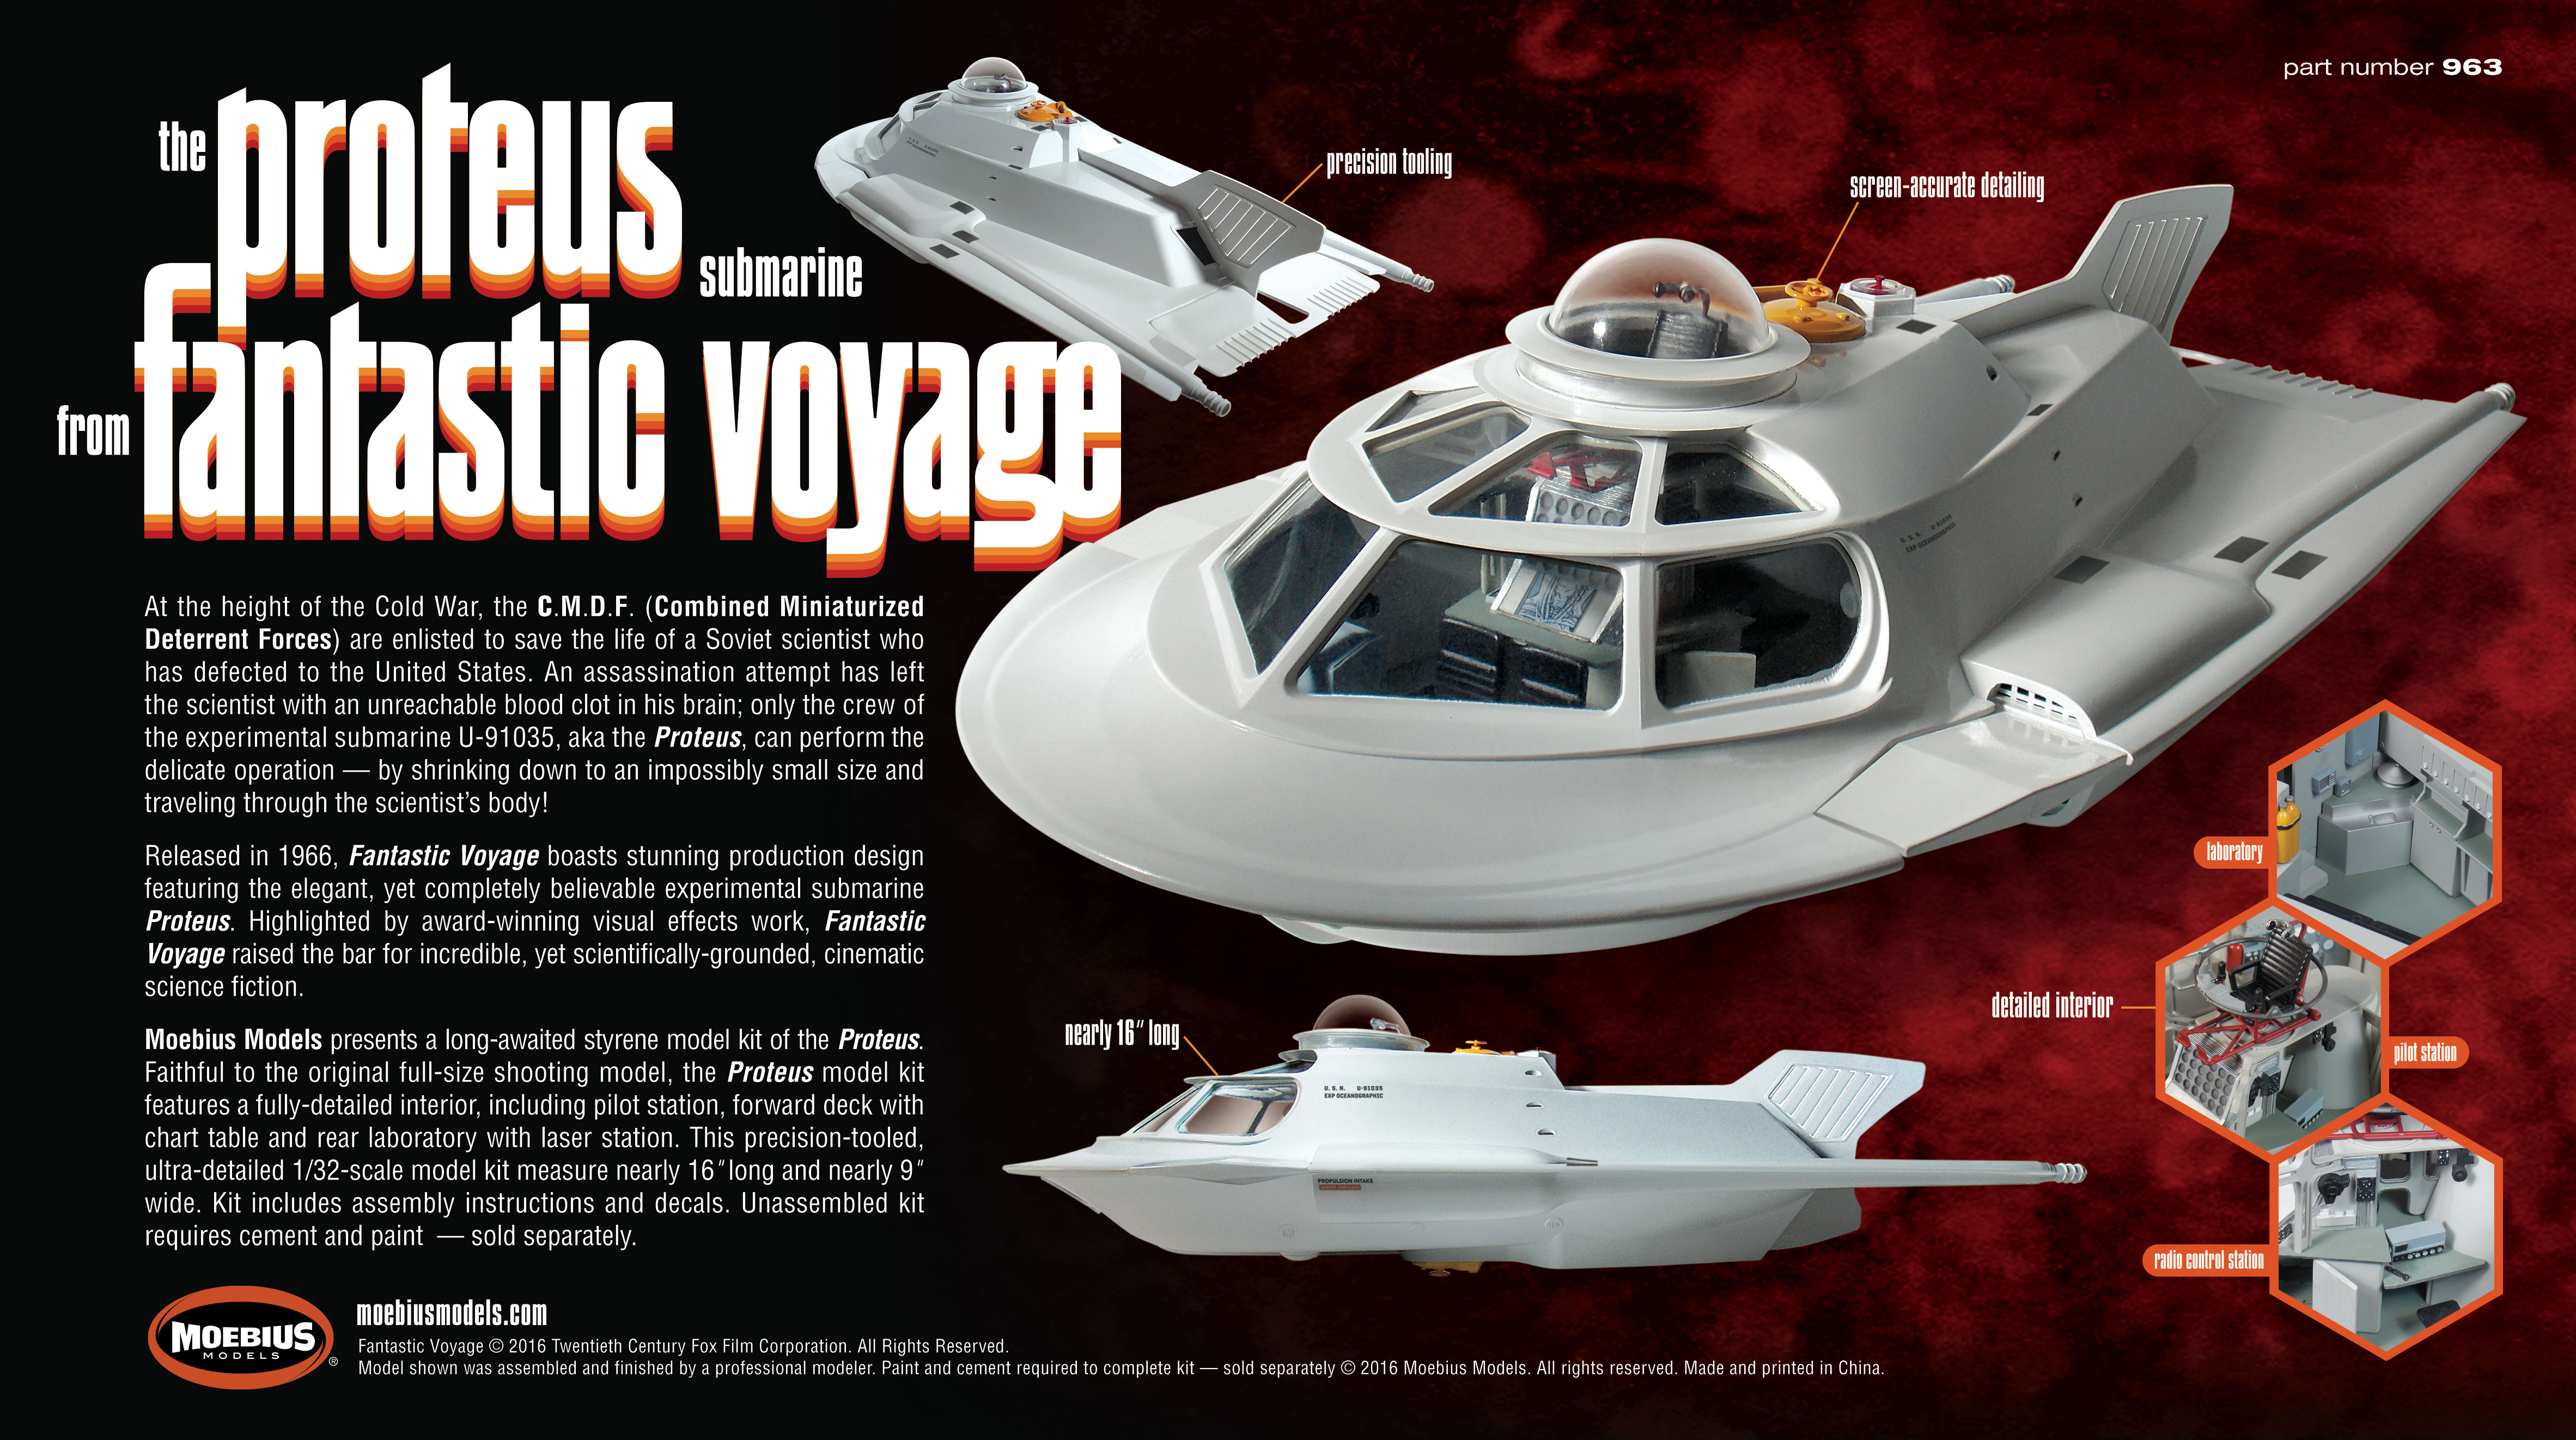 fantastic voyage 1 Fantastic voyage is an american animated science fiction tv series based on the famous 1966 film directed by richard fleischer the series consists of 17 episodes each running 30 minutes it was run on abc-tv from september 14, 1968, through january 4, 1969 the series was produced by filmation associates in association with 20th century fox.